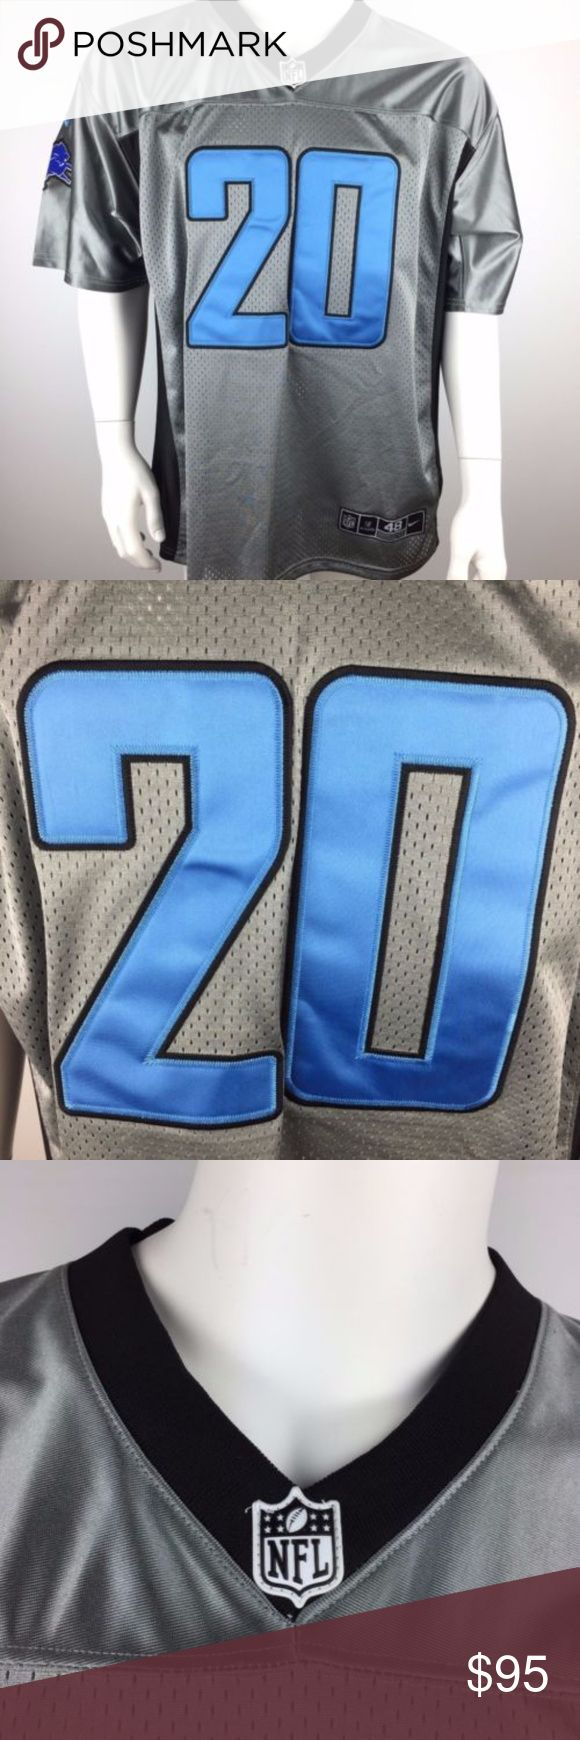 "Nike NFL On Field Jersey Detroit Lions Sanders Nike NFL On Field Jersey Detroit Lions #20 Barry Sanders Men's size 48 (XL) Gray with blue New with tags, Does have a bit of thread missing on the bottom of the ""A"". mc2 Nike Shirts Tees - Short Sleeve"